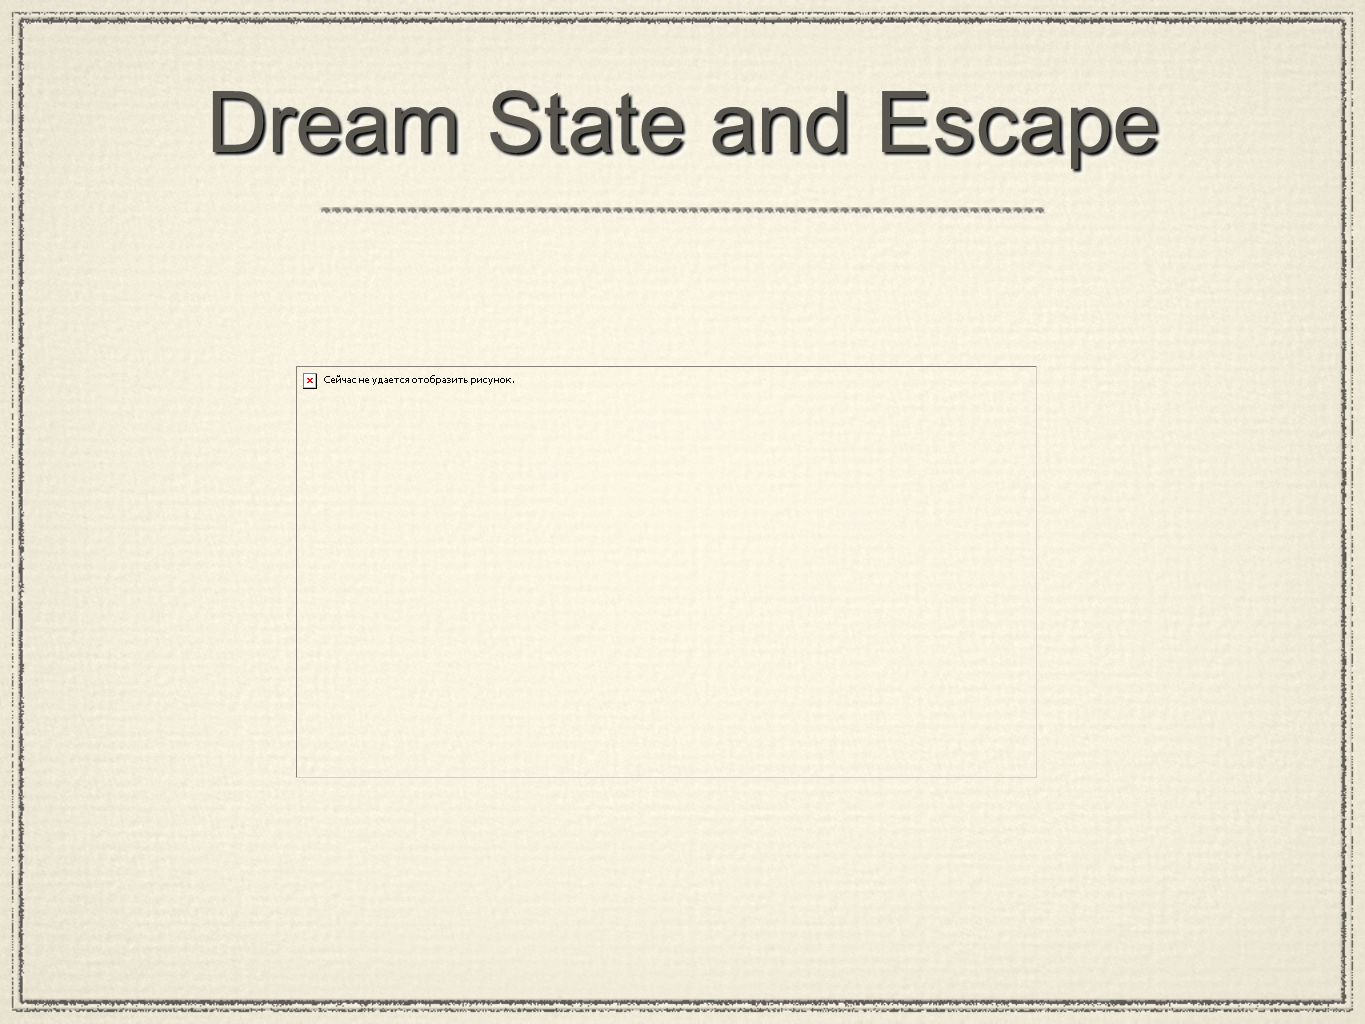 Dream State and Escape